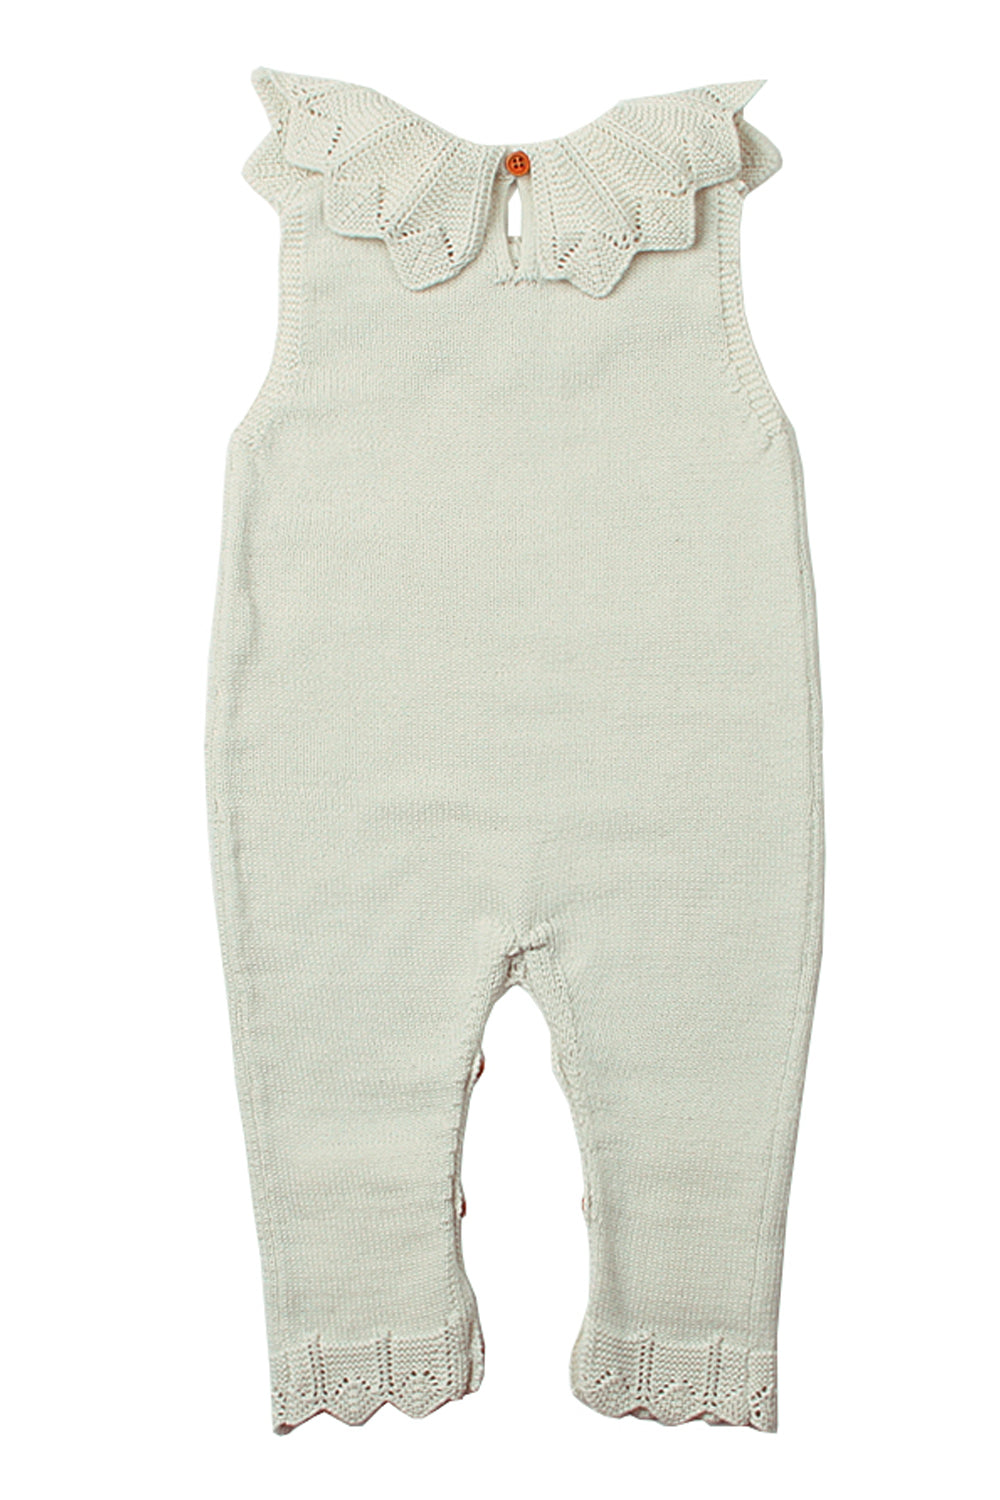 White Flounce Neck Detail Unisex Baby Jumpsuit